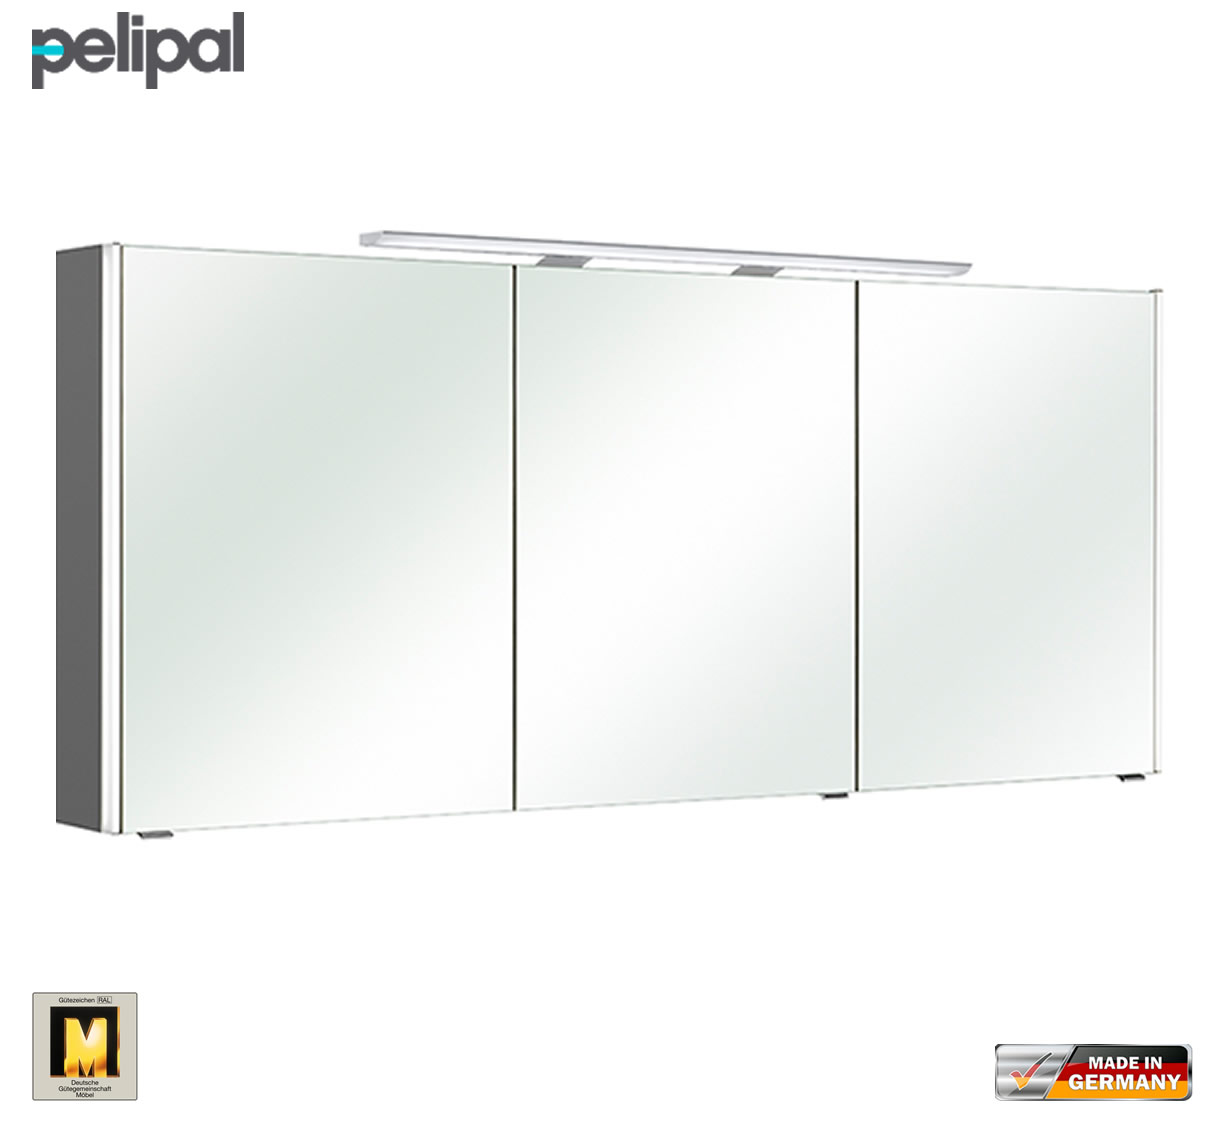 pelipal neutraler spiegelschrank s10 ledplus 167 cm mit. Black Bedroom Furniture Sets. Home Design Ideas